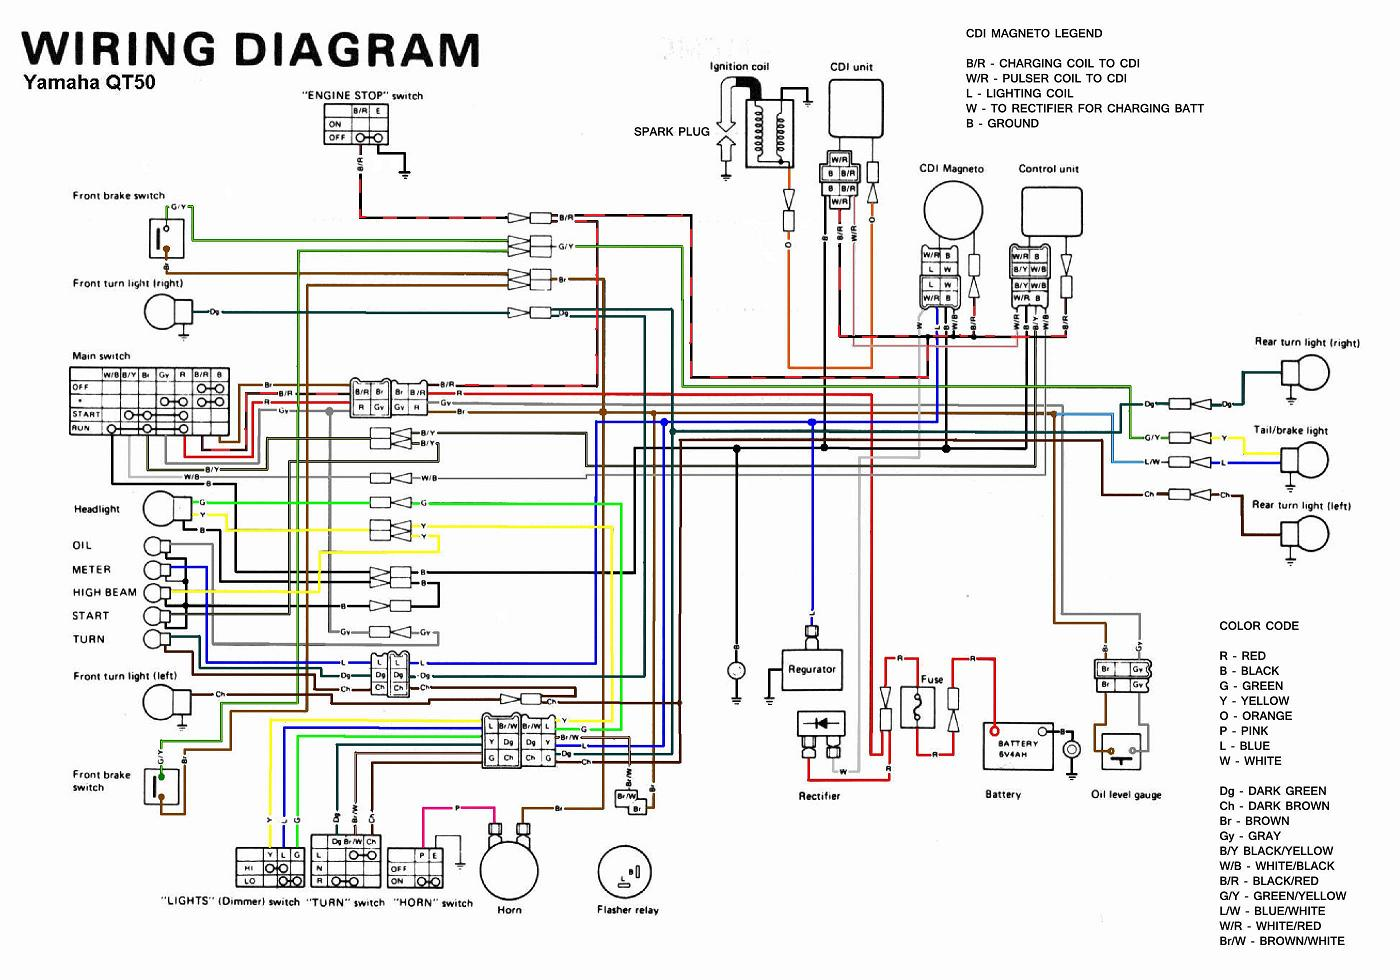 small resolution of yt60 wiring diagram just wiring diagramyt60 wiring diagram electrical wiring diagram yt60 wiring diagram